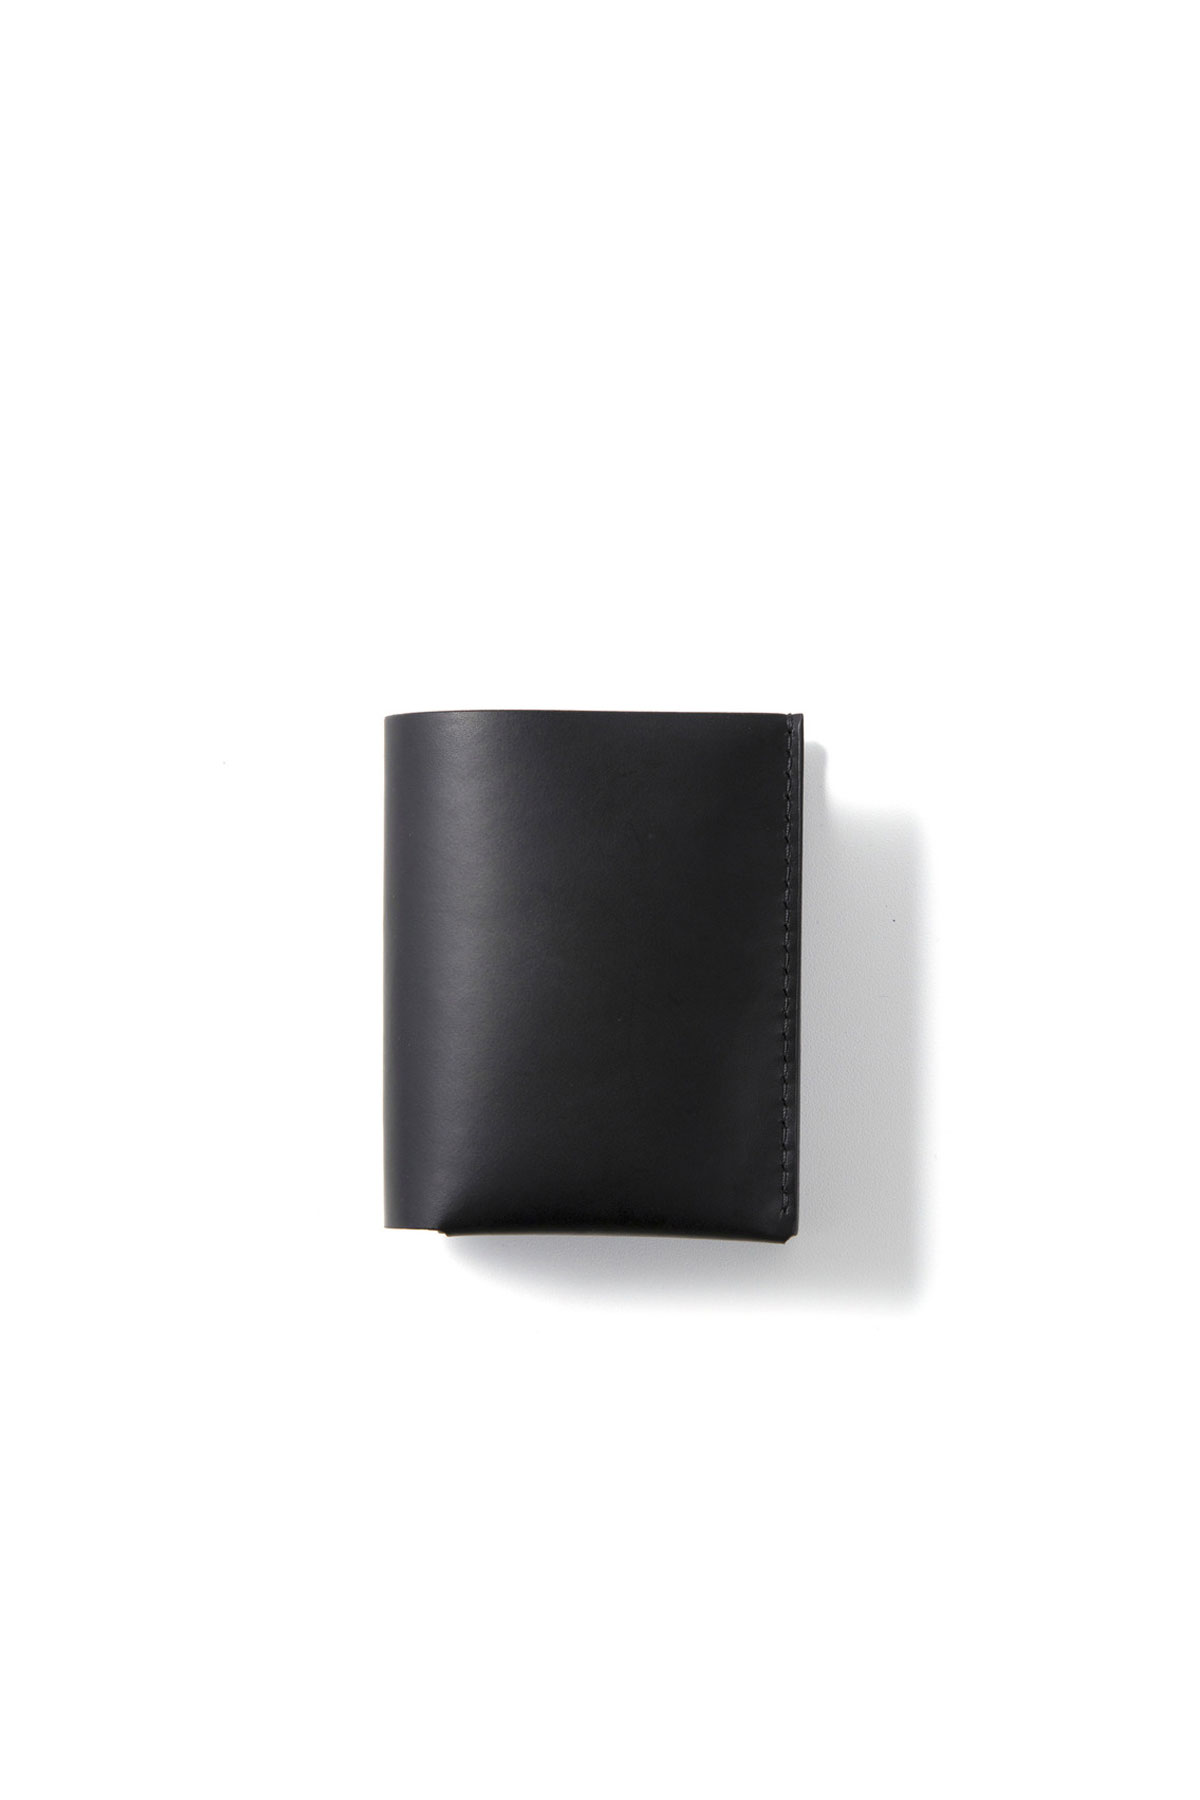 Blankof : WCL 03 T1 5 Slot Wallet (Black)